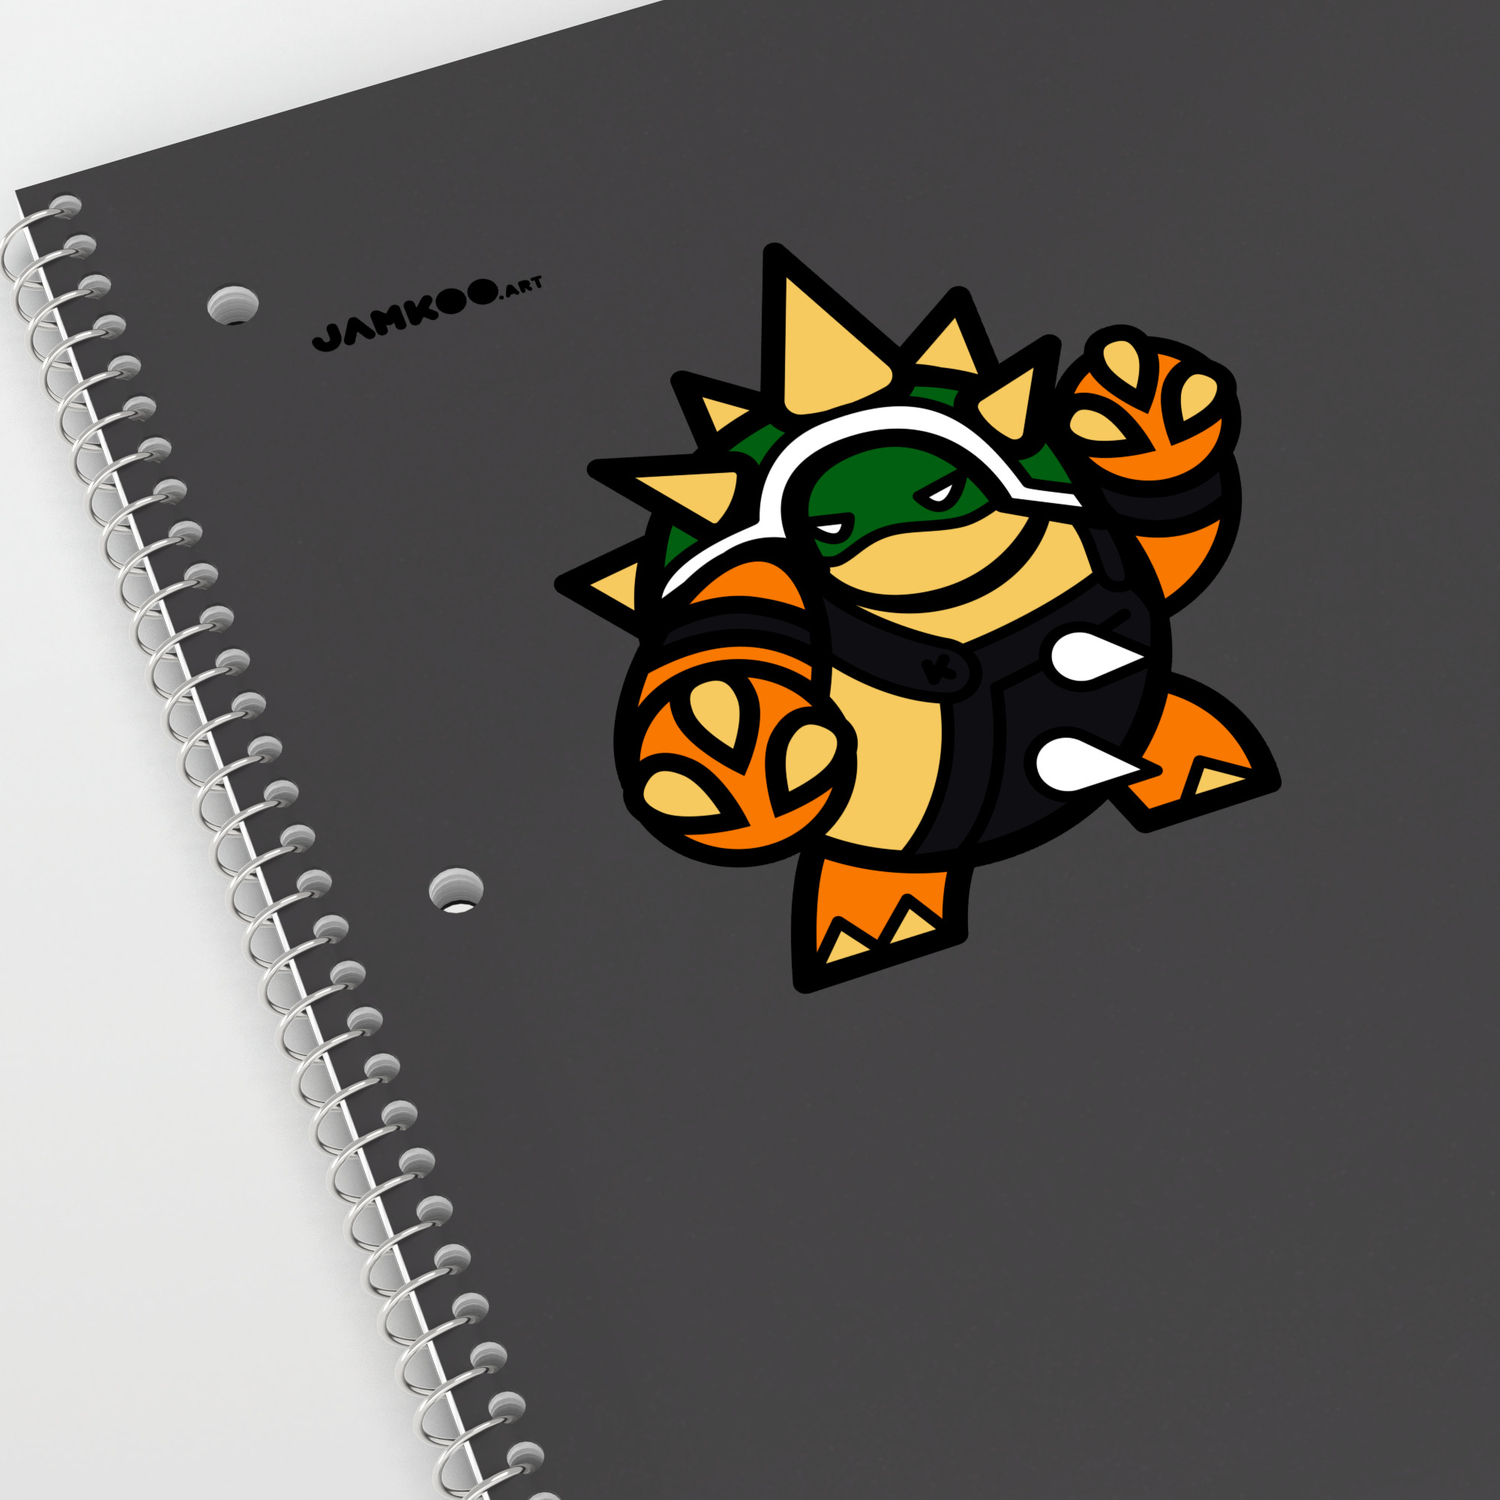 FED - Rammus Sticker by jamkoo